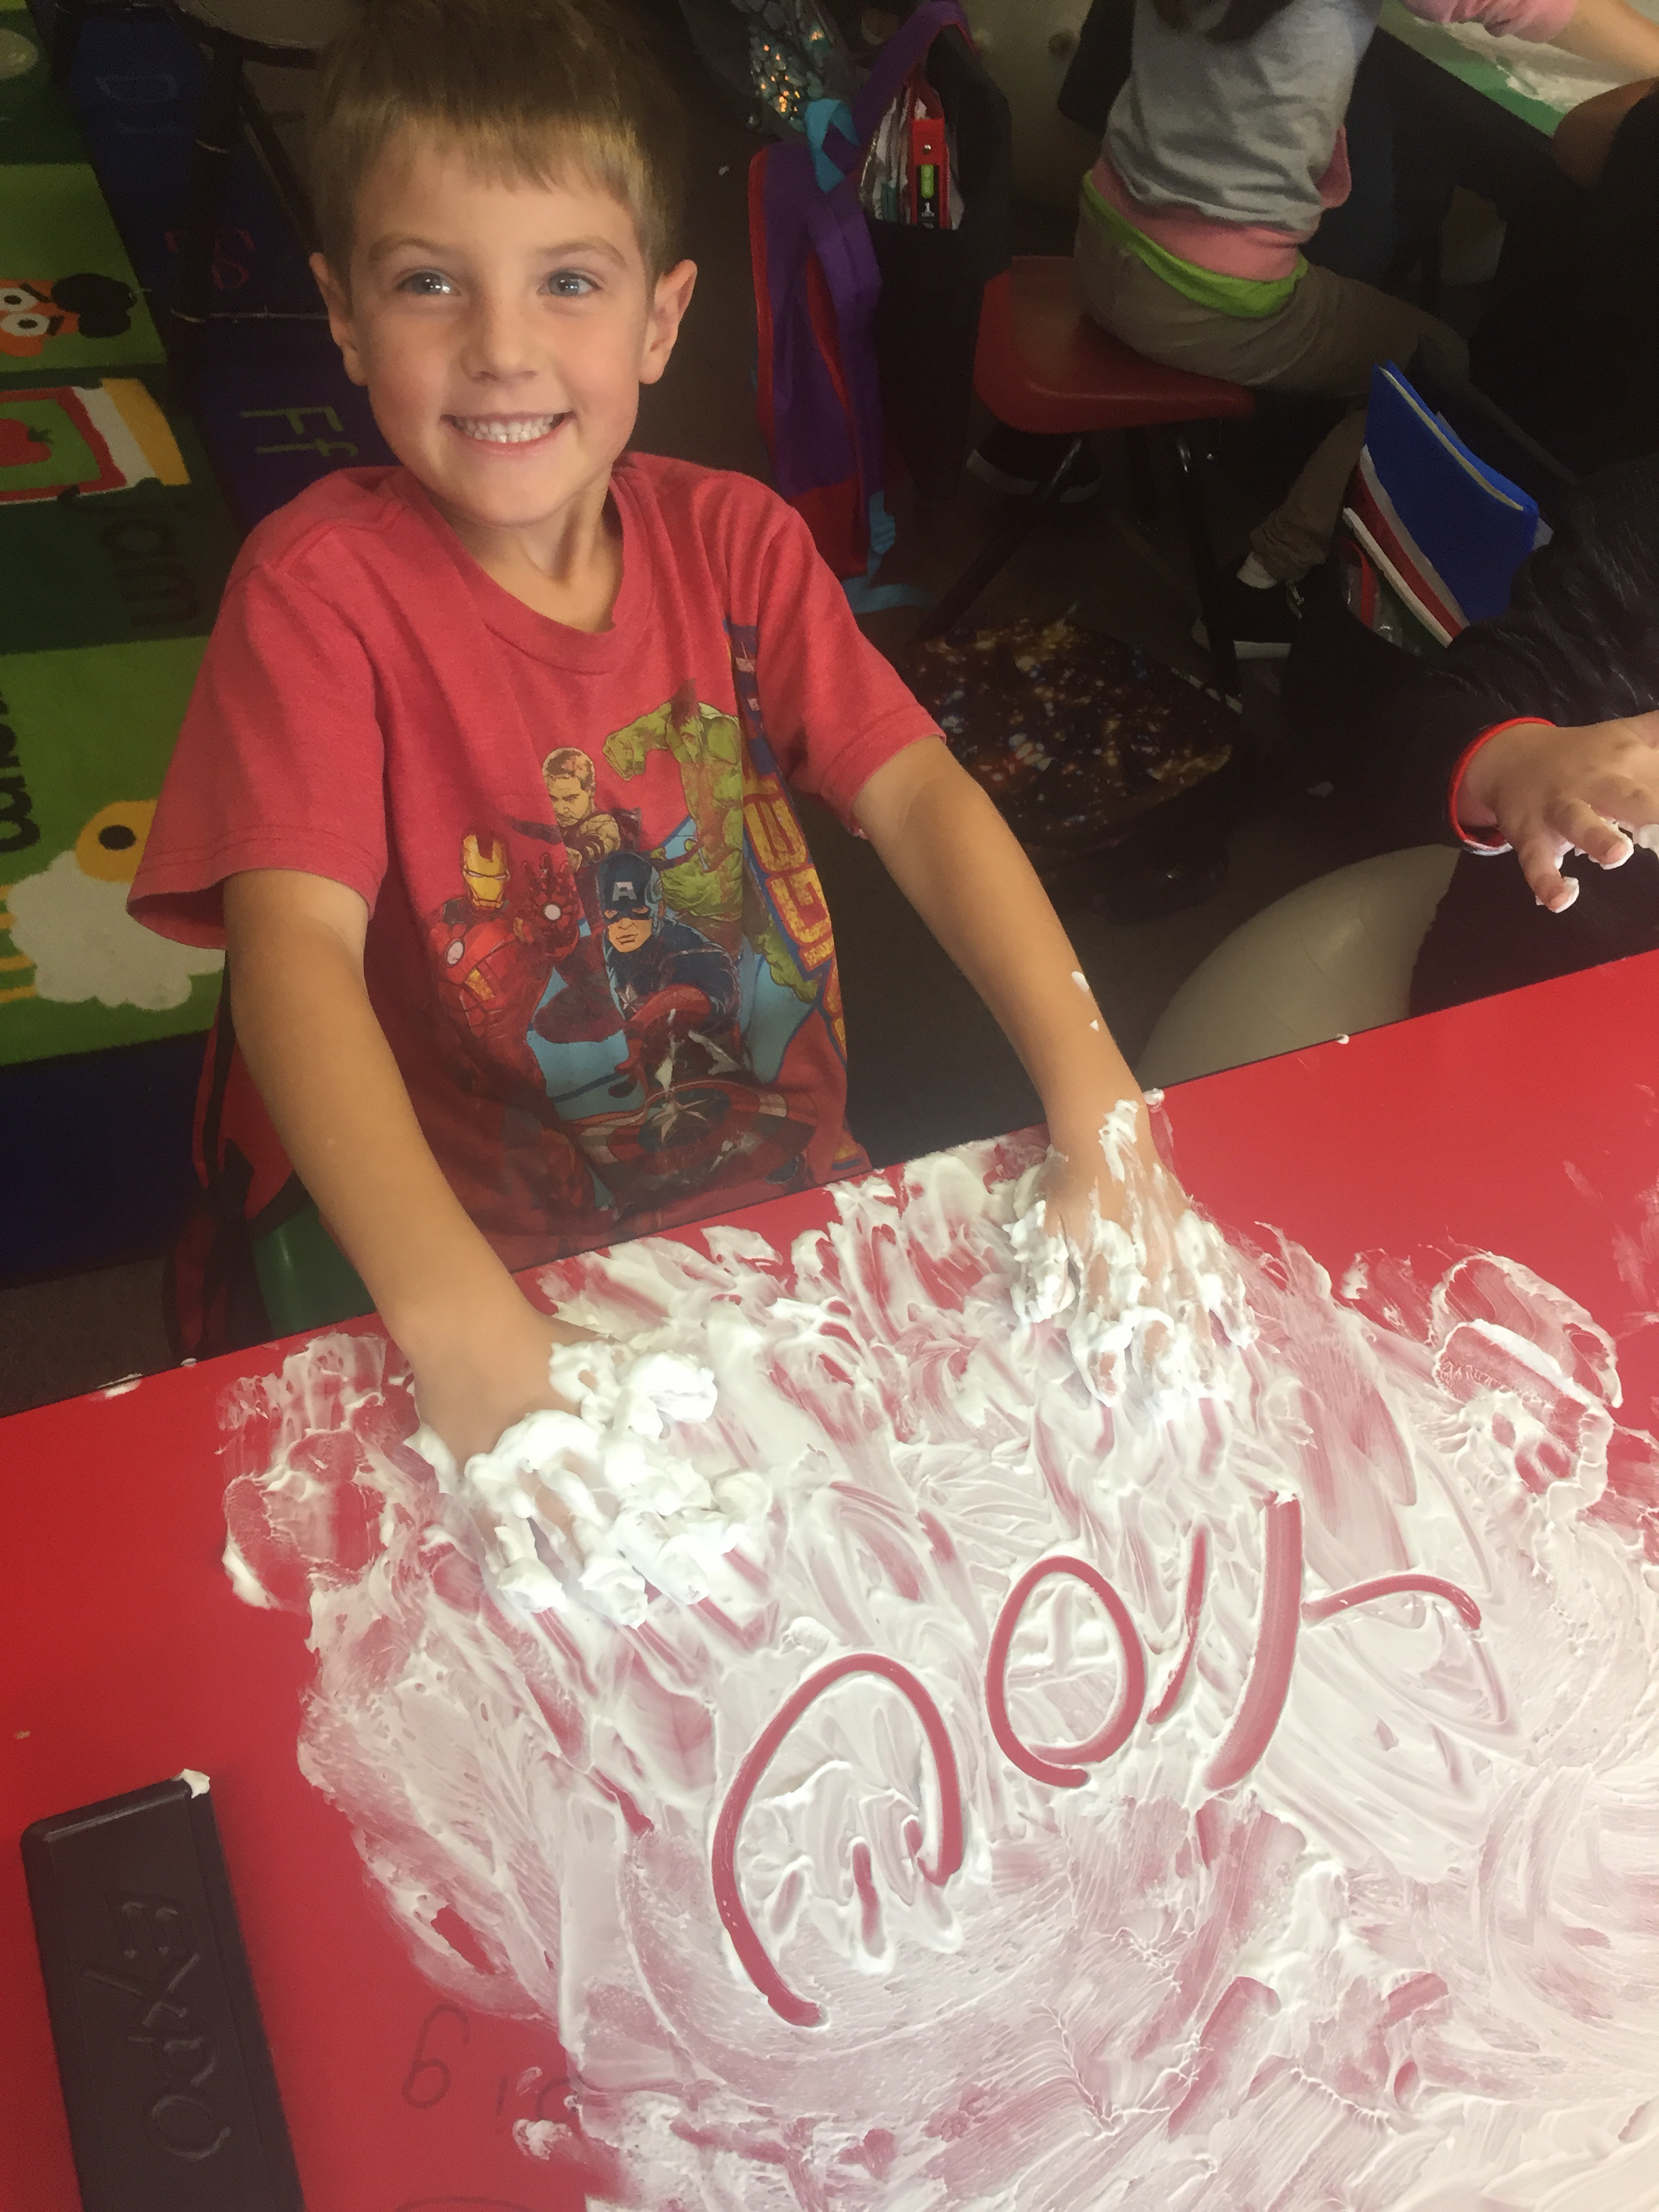 1st graders practicing sight words with shaving cream during OWL time!